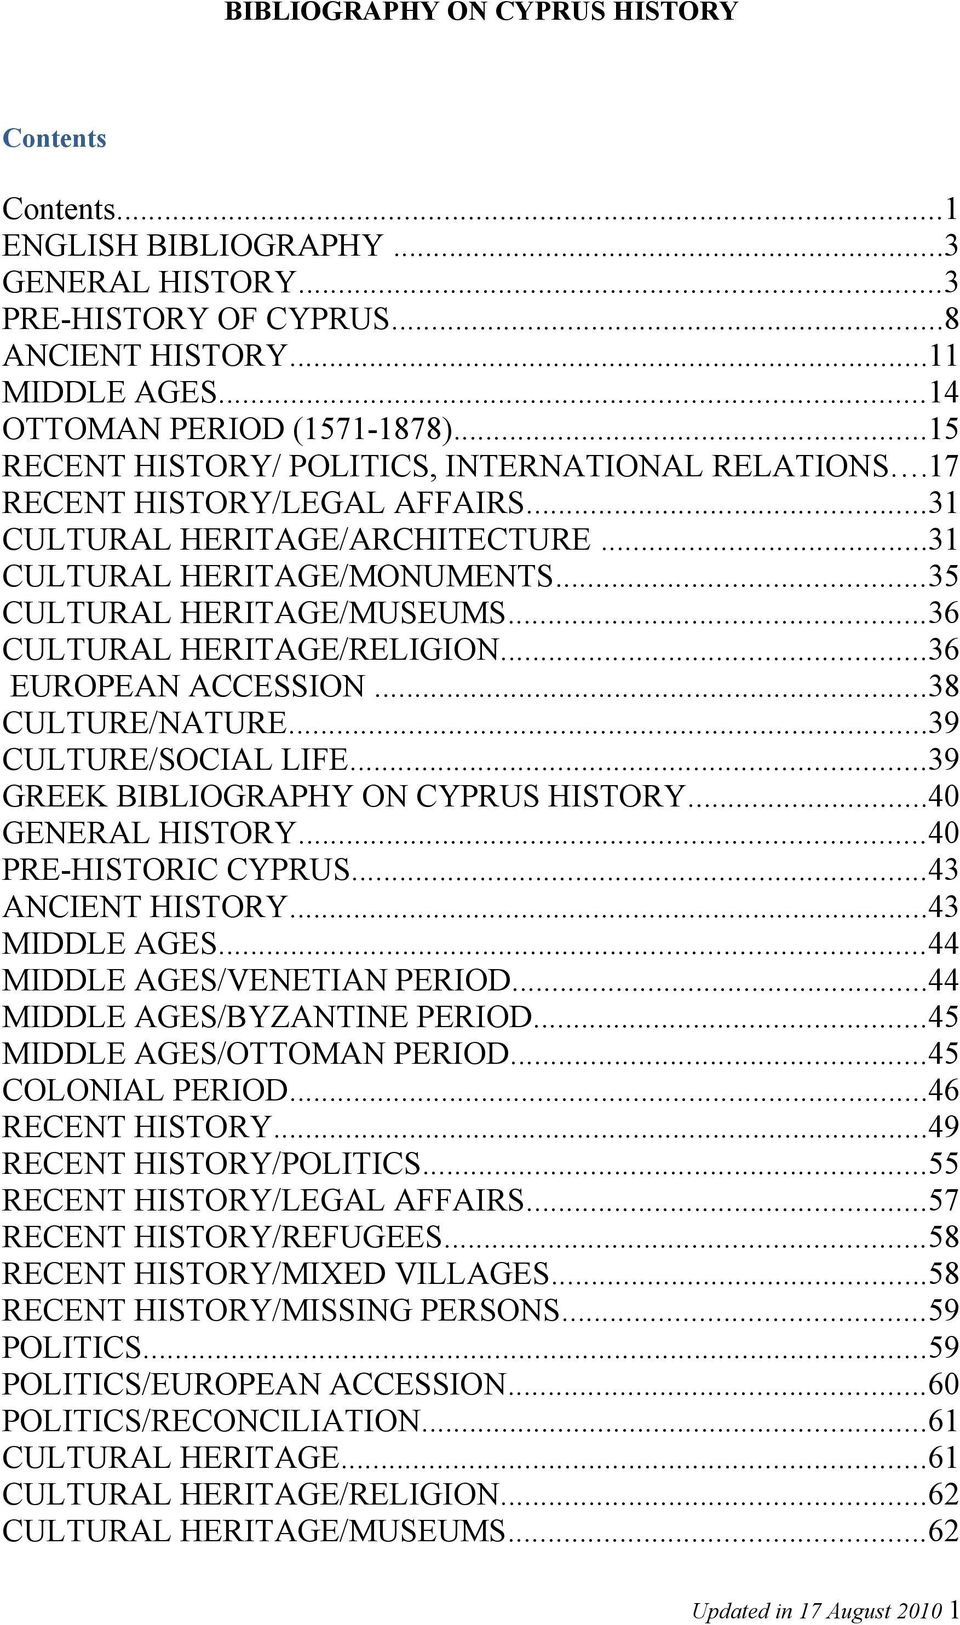 ..36 CULTURAL HERITAGE/RELIGION...36 EUROPEAN ACCESSION...38 CULTURE/NATURE...39 CULTURE/SOCIAL LIFE...39 GREEK BIBLIOGRAPHY ON CYPRUS HISTORY...40 GENERAL HISTORY...40 PRE-HISTORIC CYPRUS.